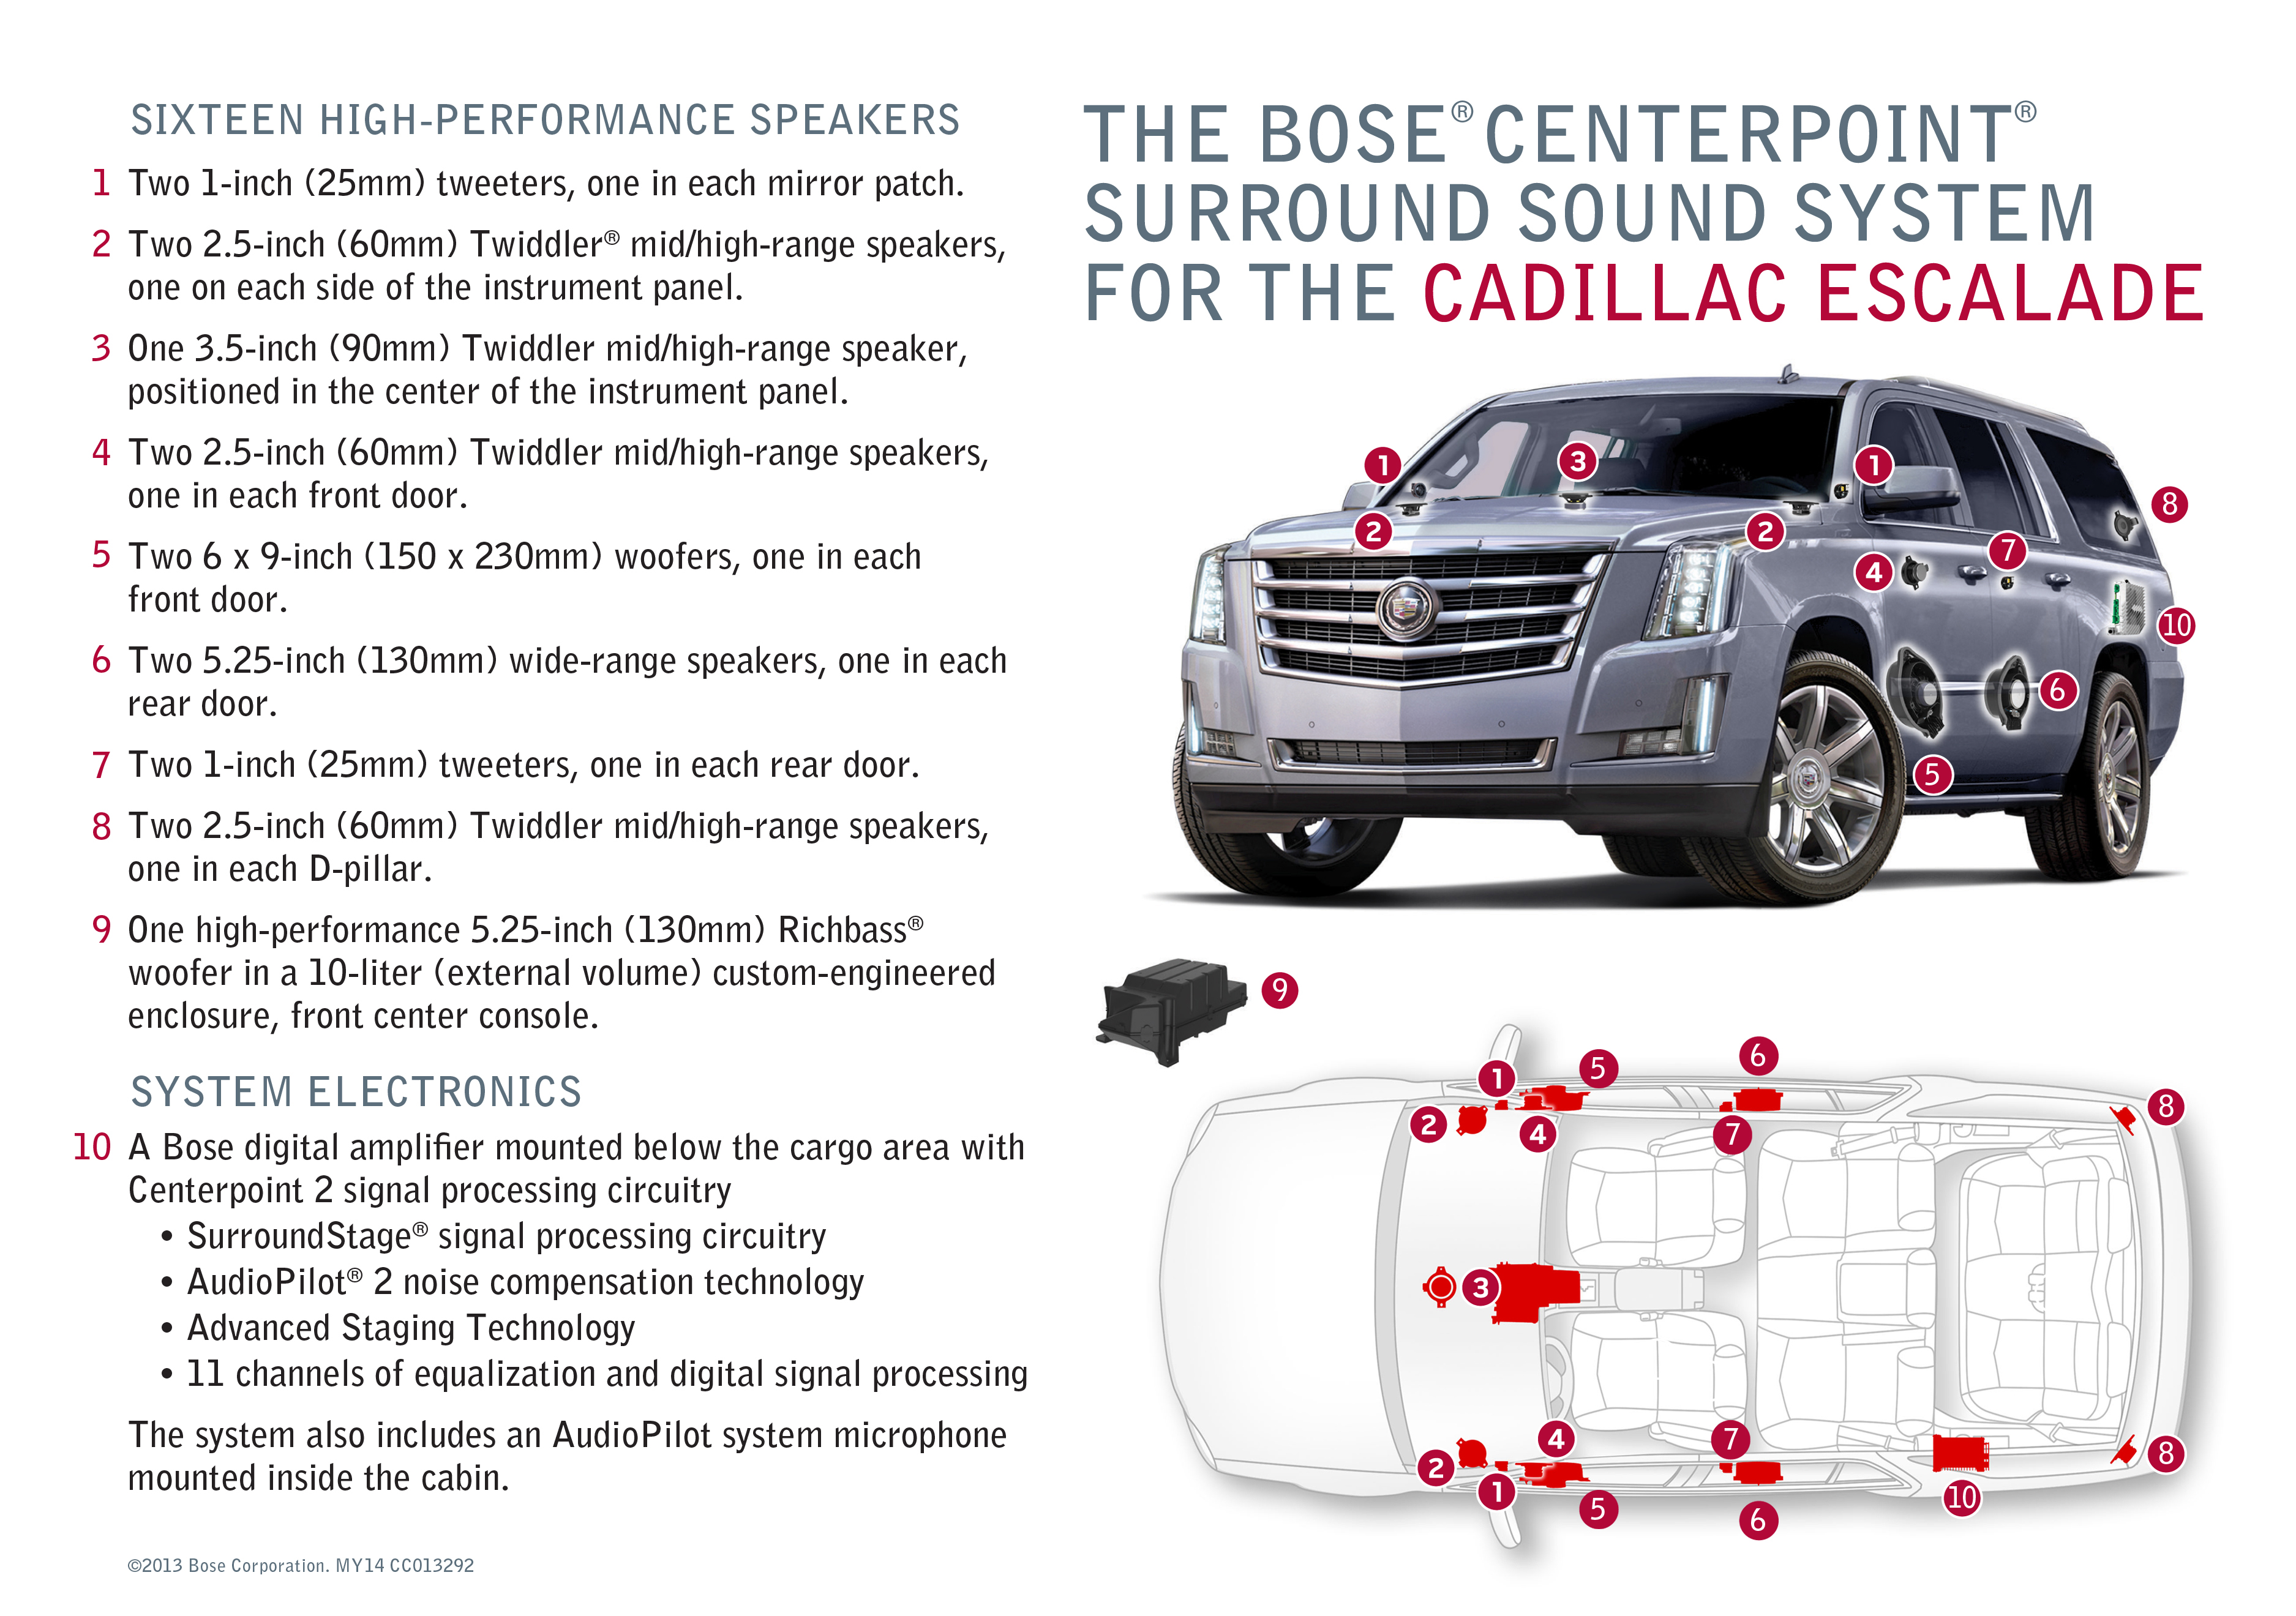 Cadillac escalade features bose centerpoint surround sound system sciox Images